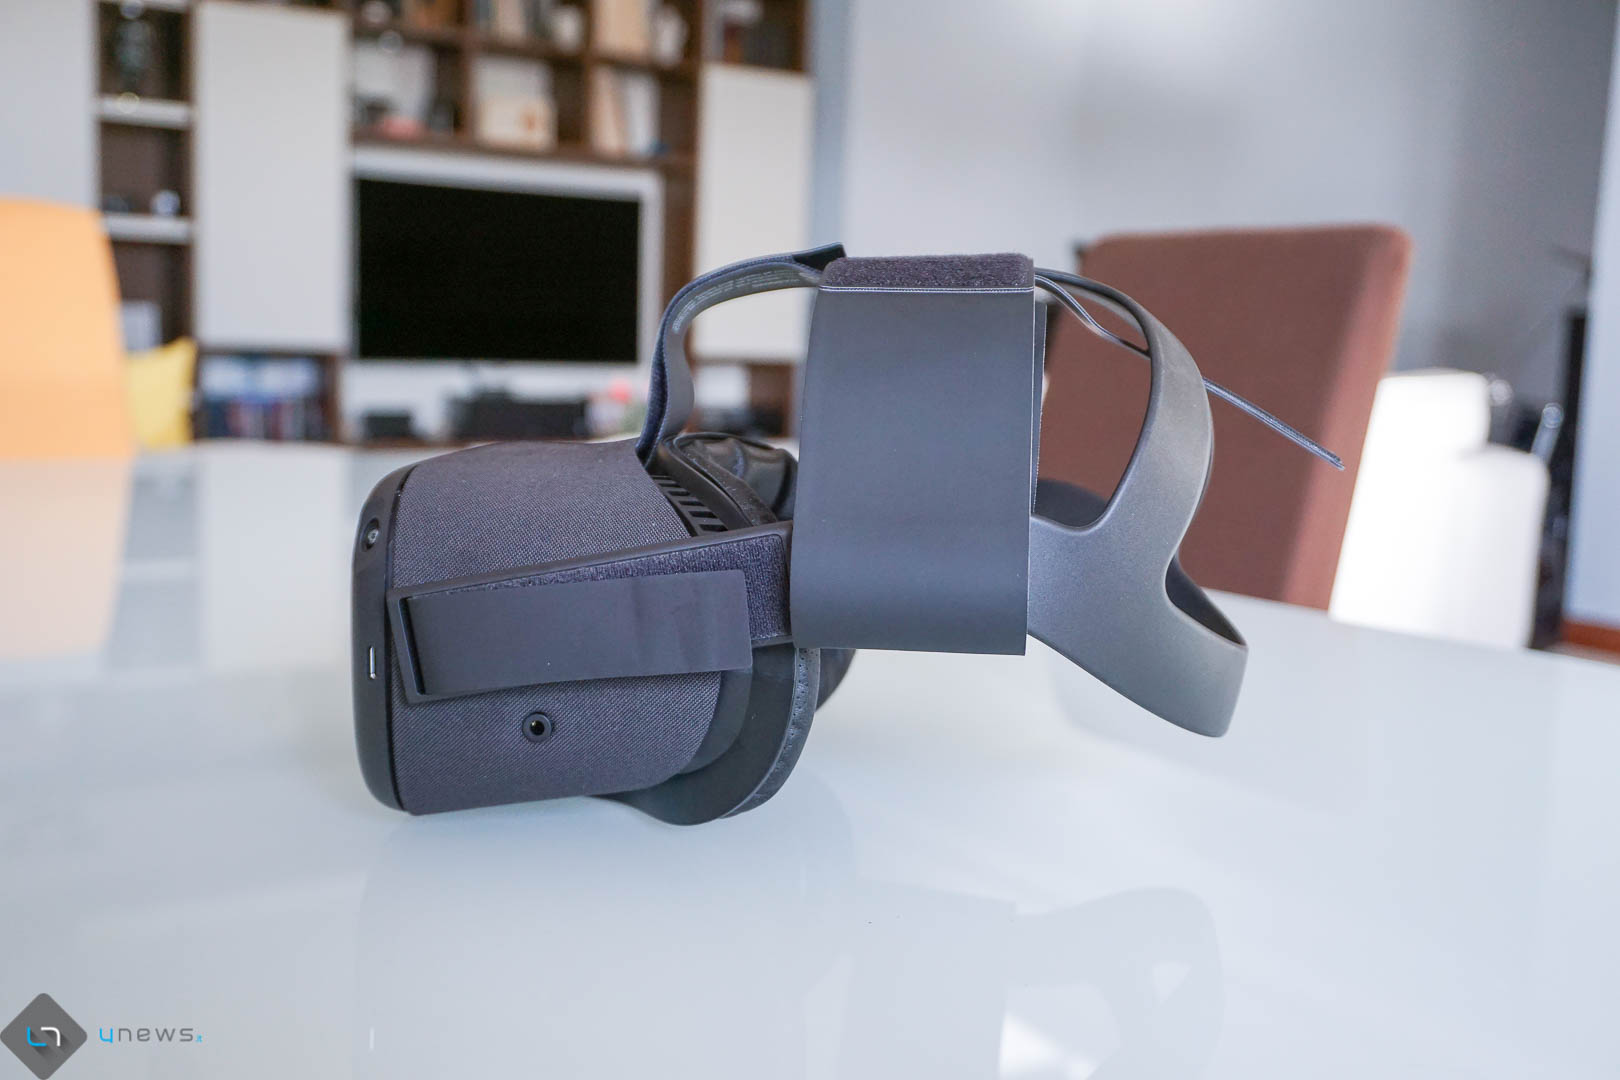 Oculus Quest Kiwi Accessories 21 - Guida agli accessori fondamentali per Oculus Quest